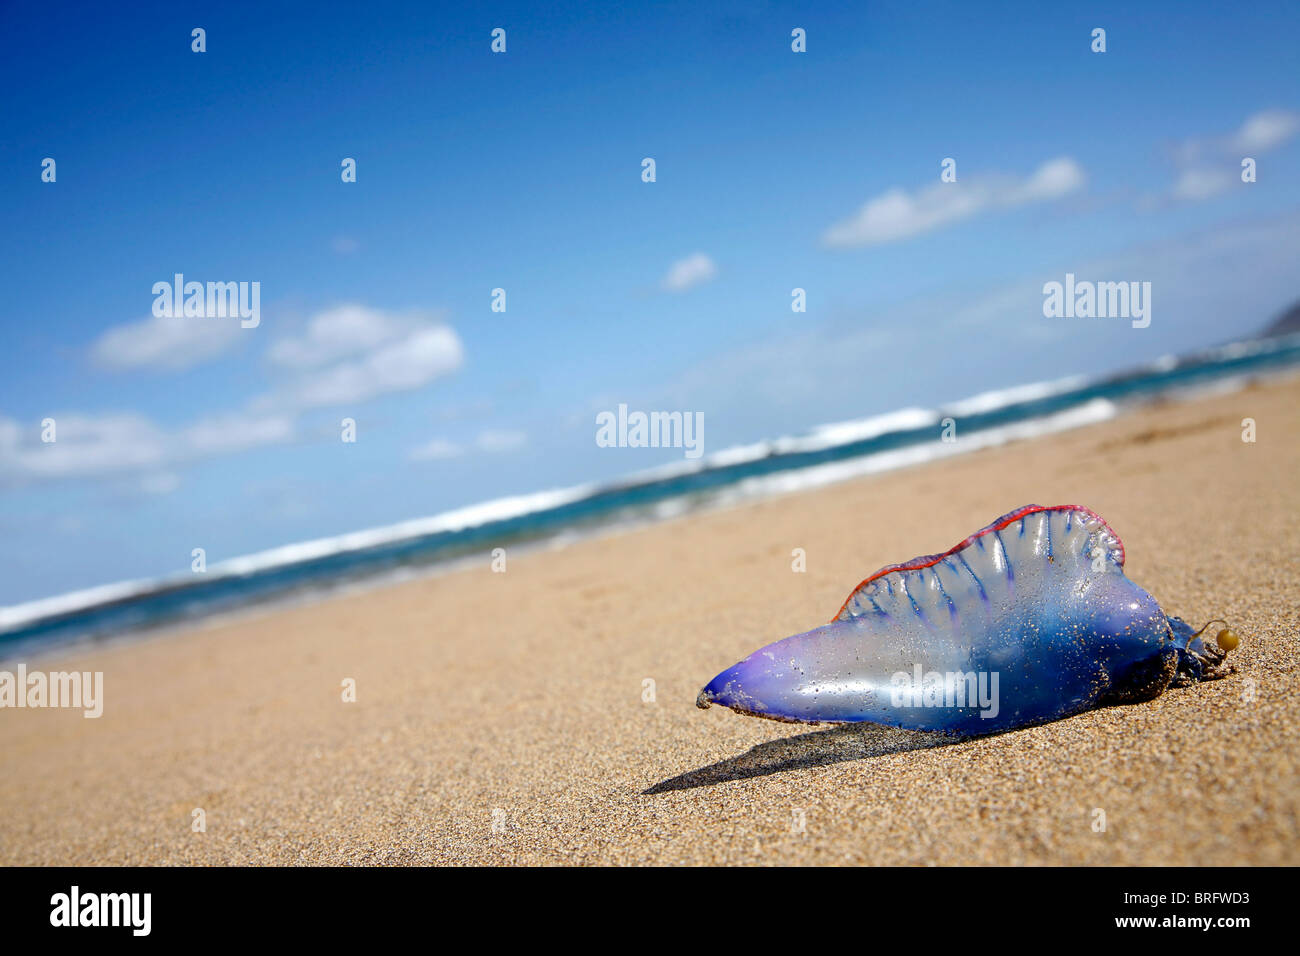 Portuguese Man of War jellyfish stranded on Atlantic beach - Stock Image